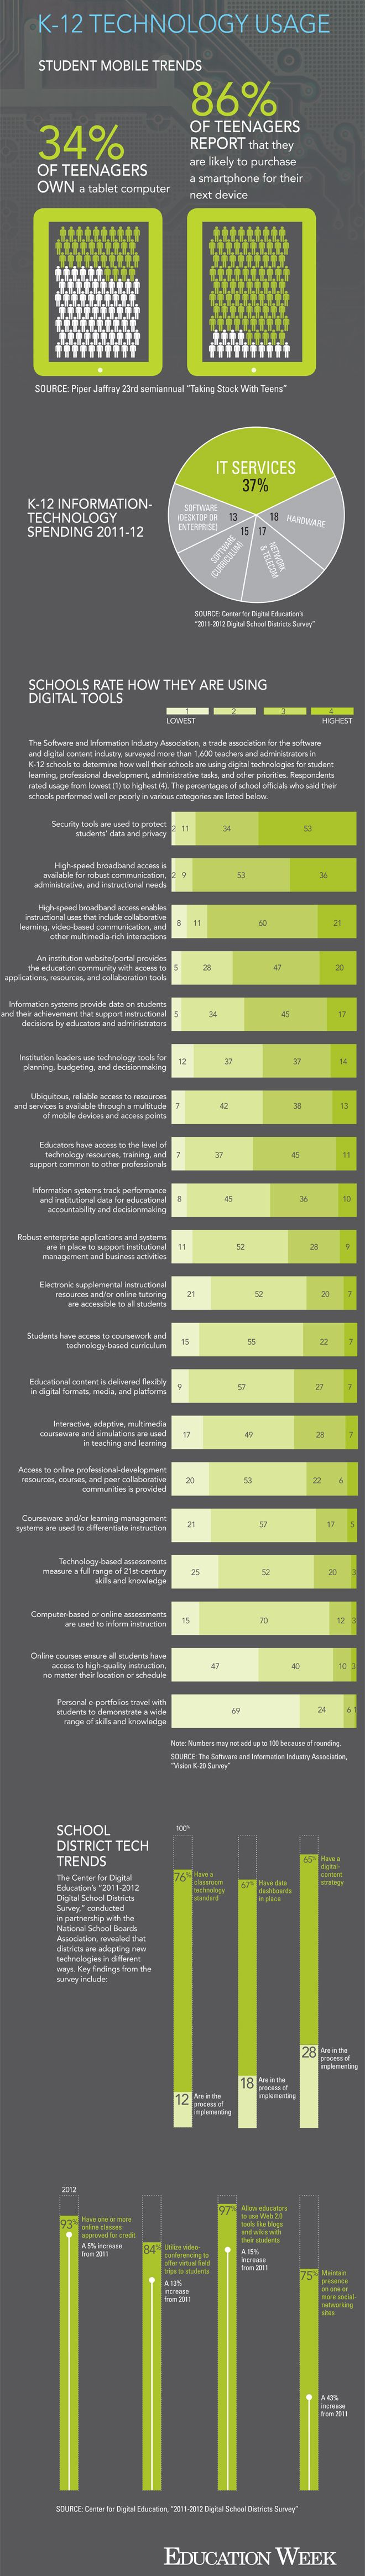 K-12 Technology Usage:  Schools are leveraging digital technologies to enhance student learning, improve professional development, and streamline administrative tasks. This infographic covers trends and developments in the use of technology among students, teachers, and administrators.